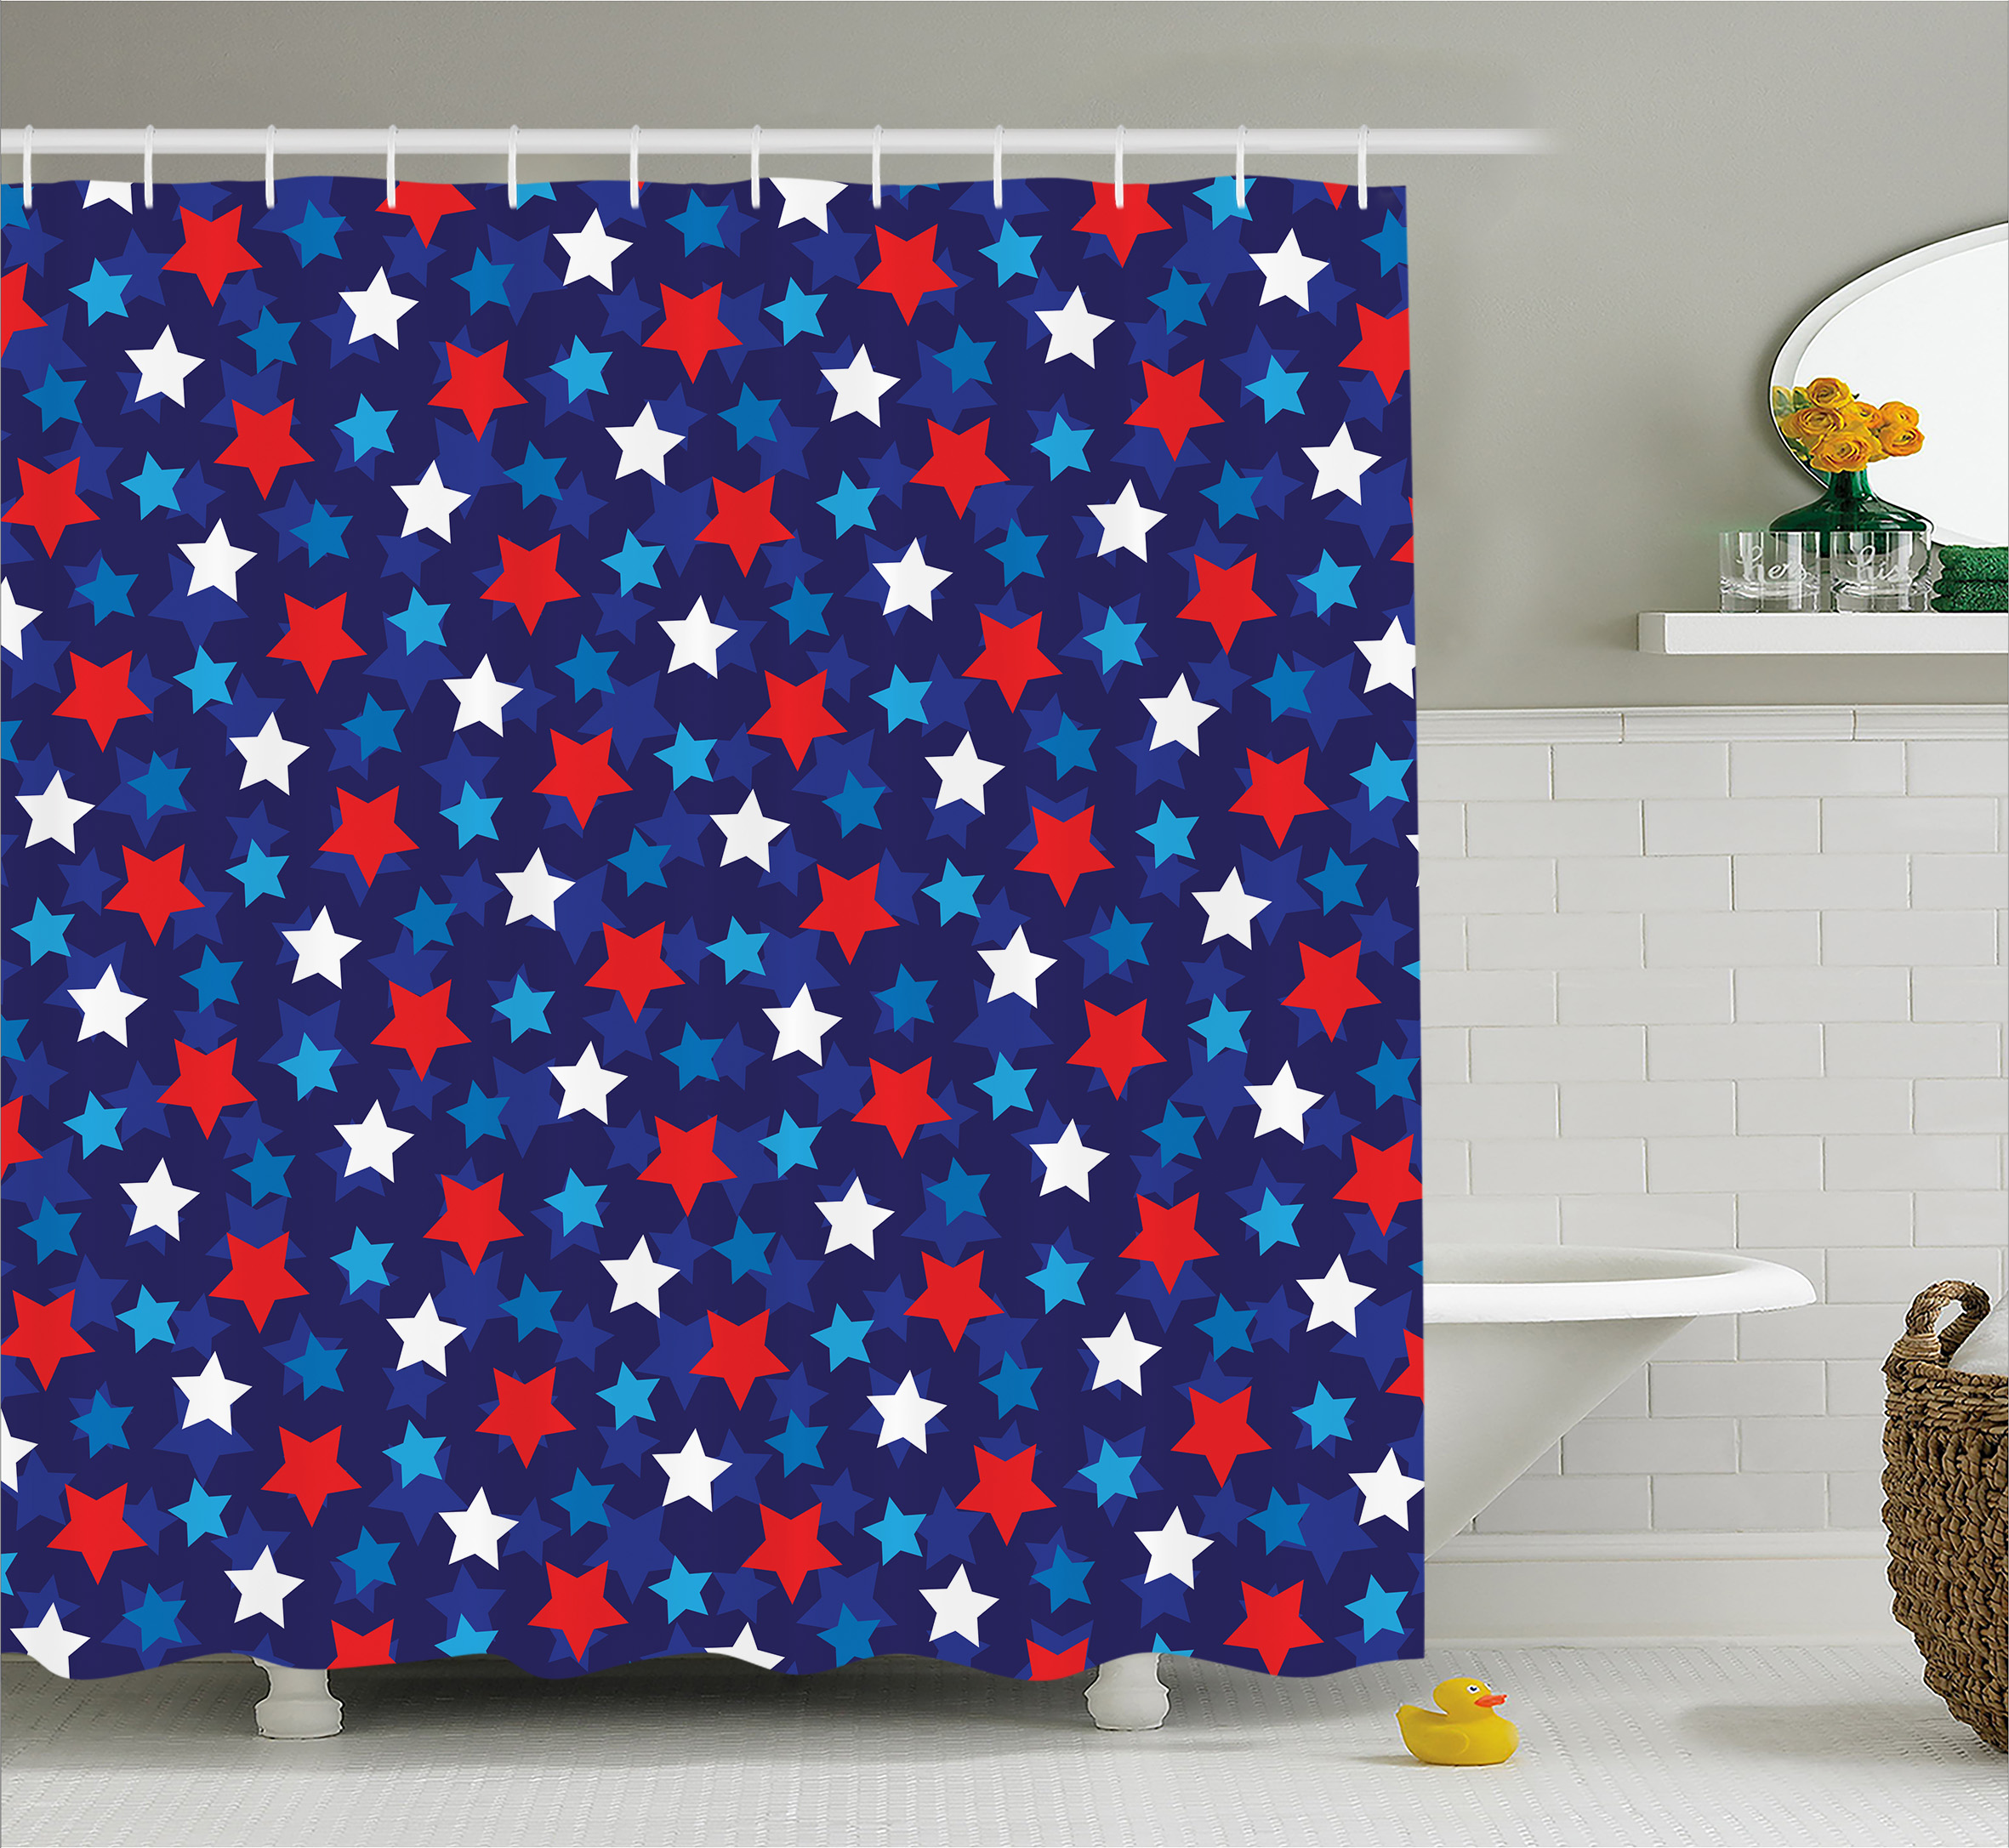 Navy Blue Shower Curtain, American Flag Inspired Patriotic Design with the Stars Image, Fabric Bathroom Set with Hooks, Red White Blue and Dark Blue, by Ambesonne